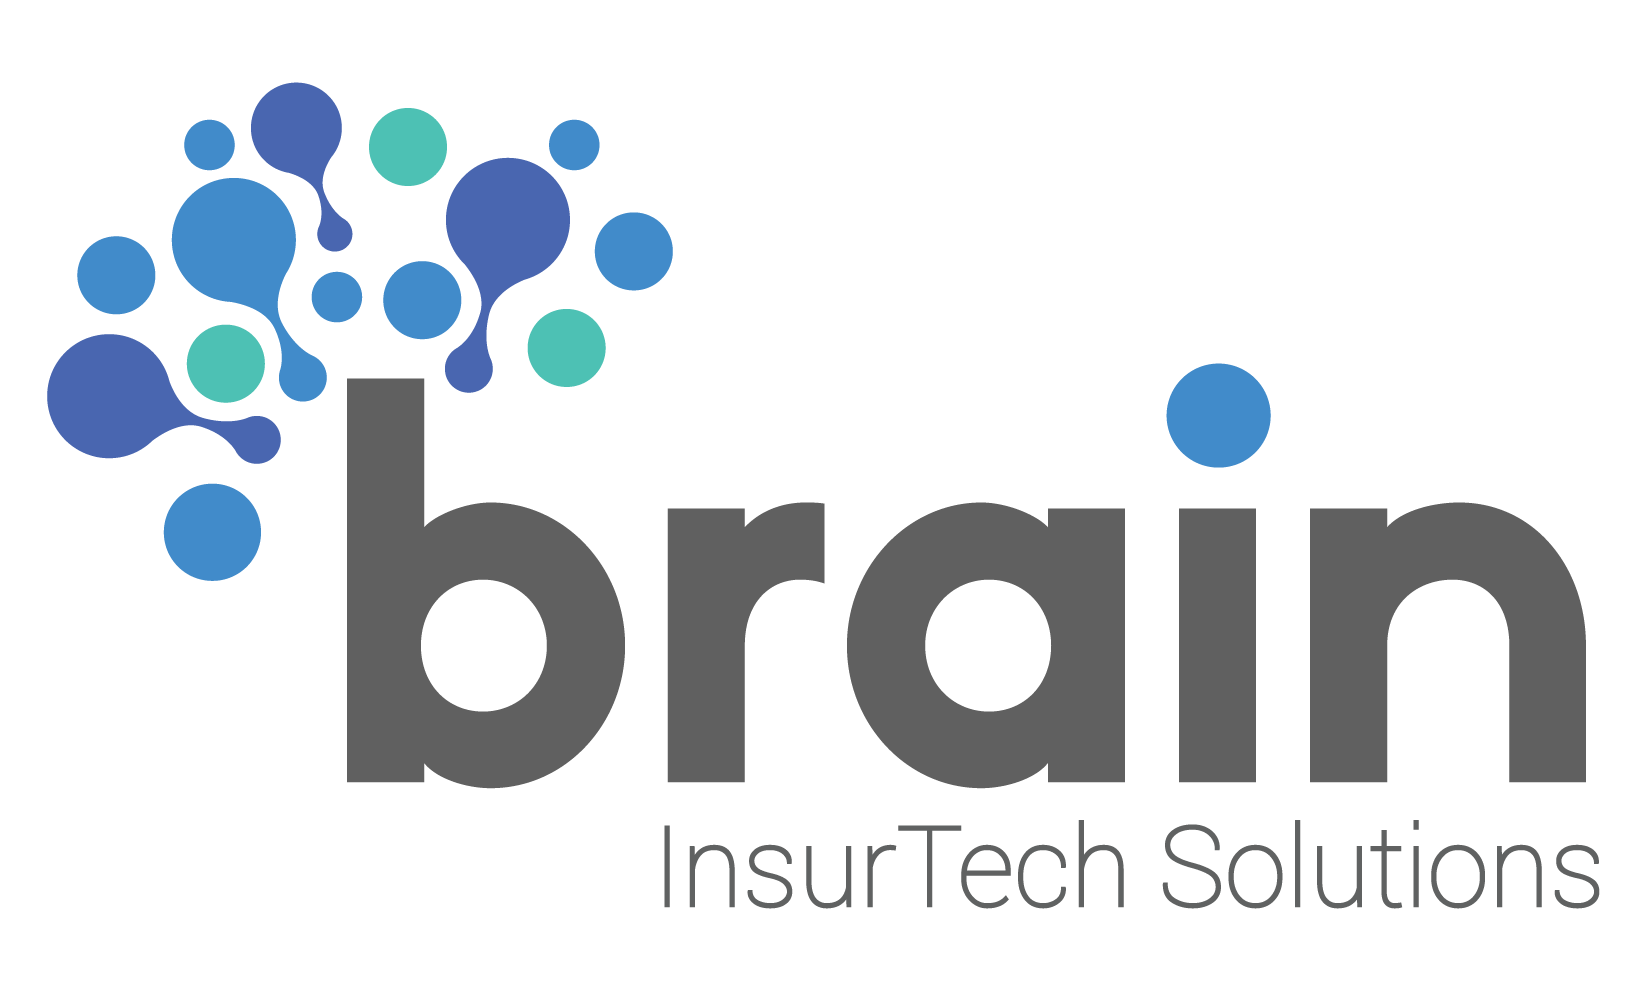 Brain InsurTech Solutions